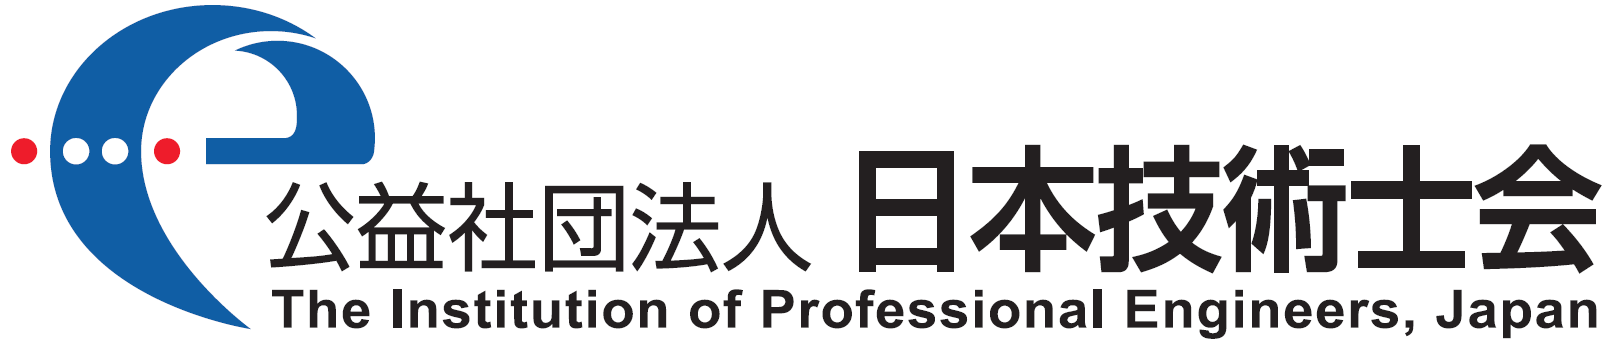 The Institution of Professional engineers, Japan, Nuclear & Radiation Division